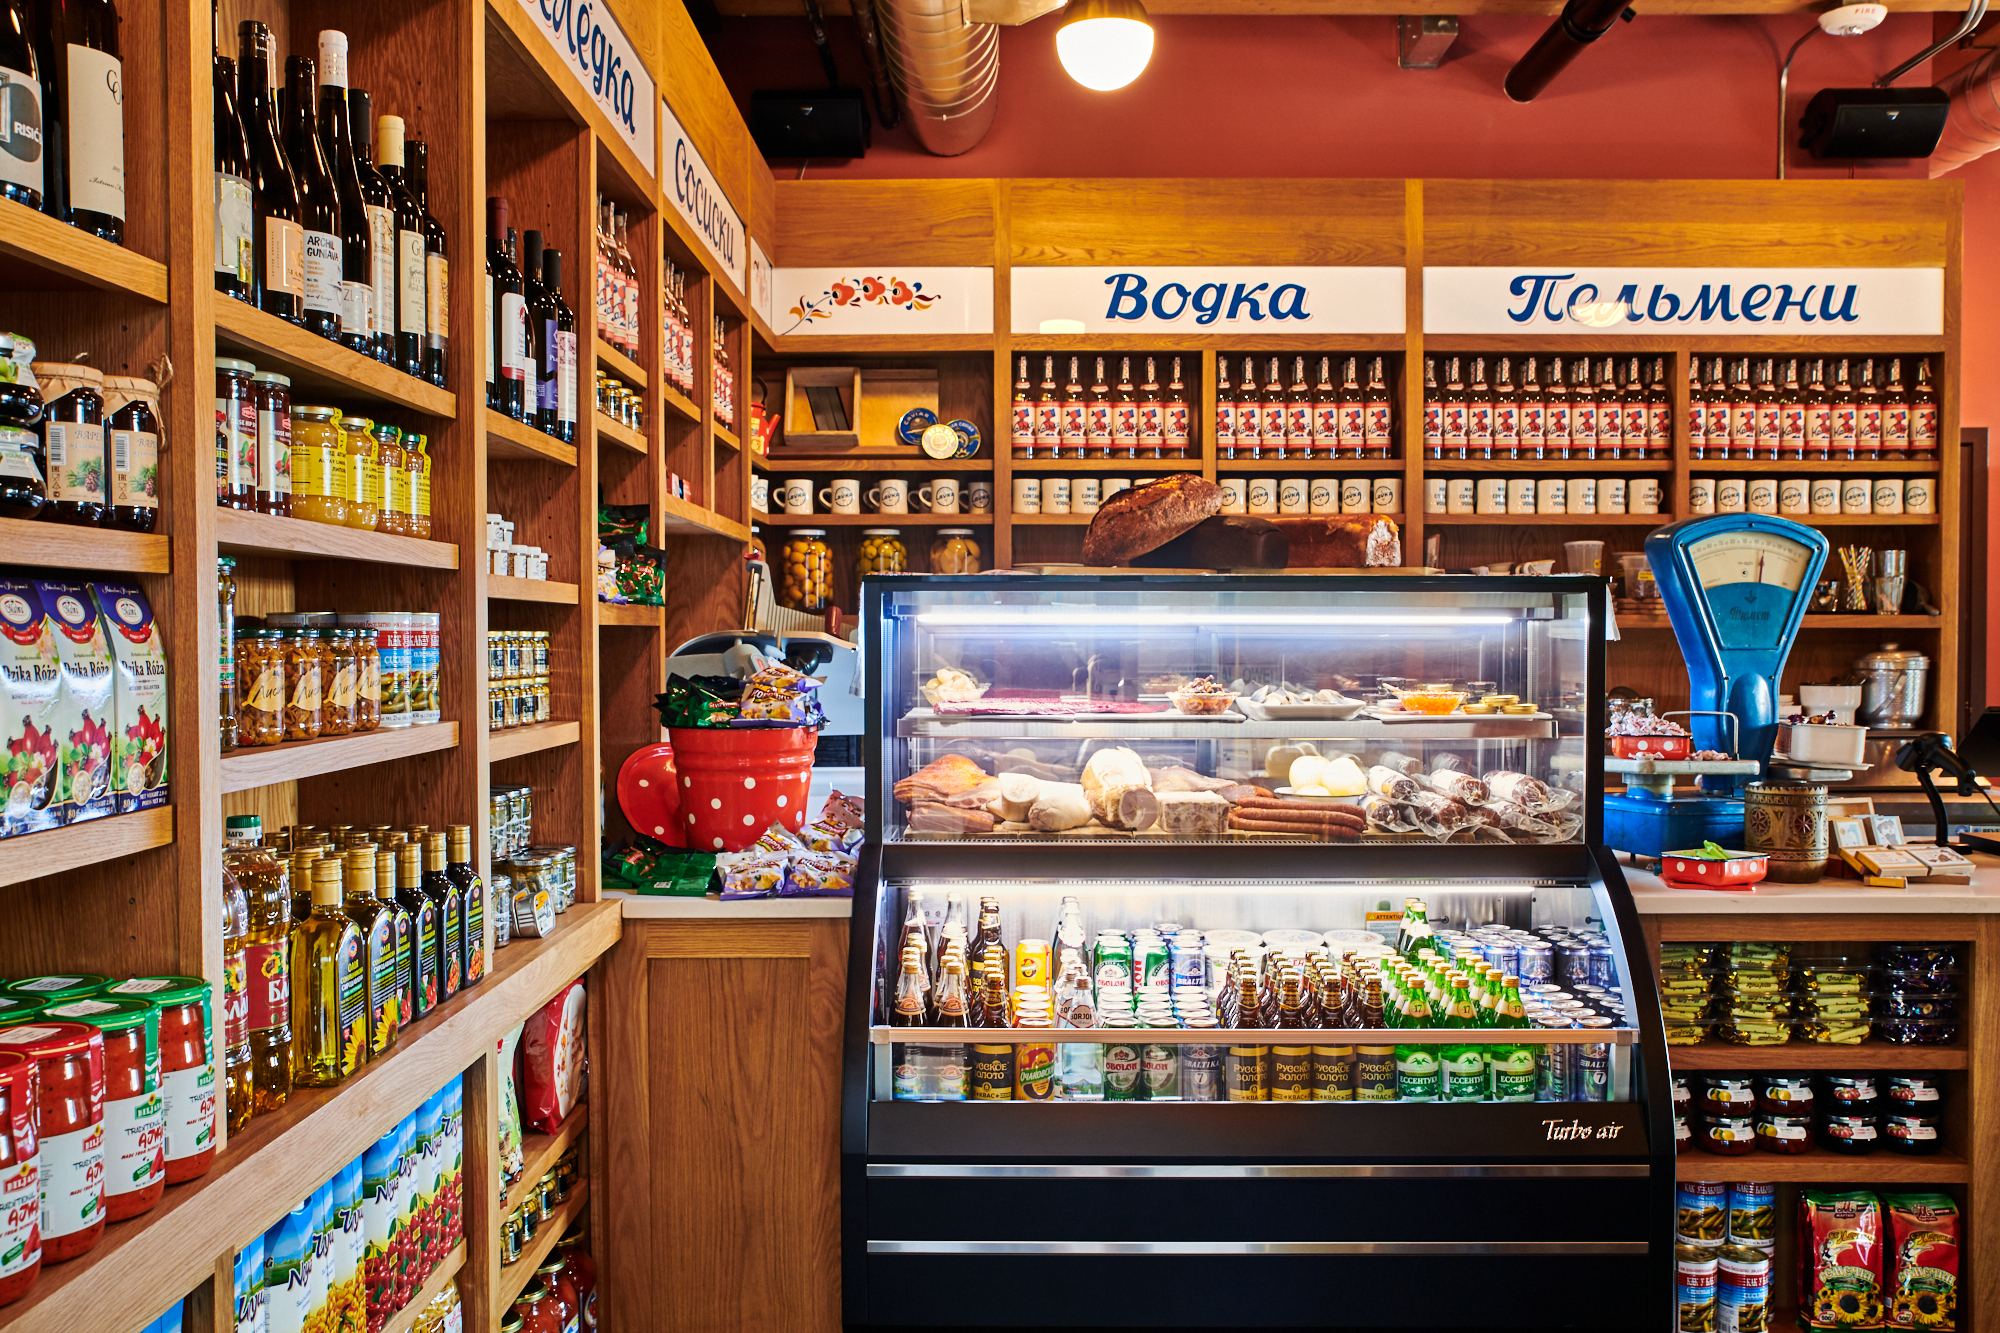 Check Out Kachka's Newly Opened Deli and Eastern European Grocery Store